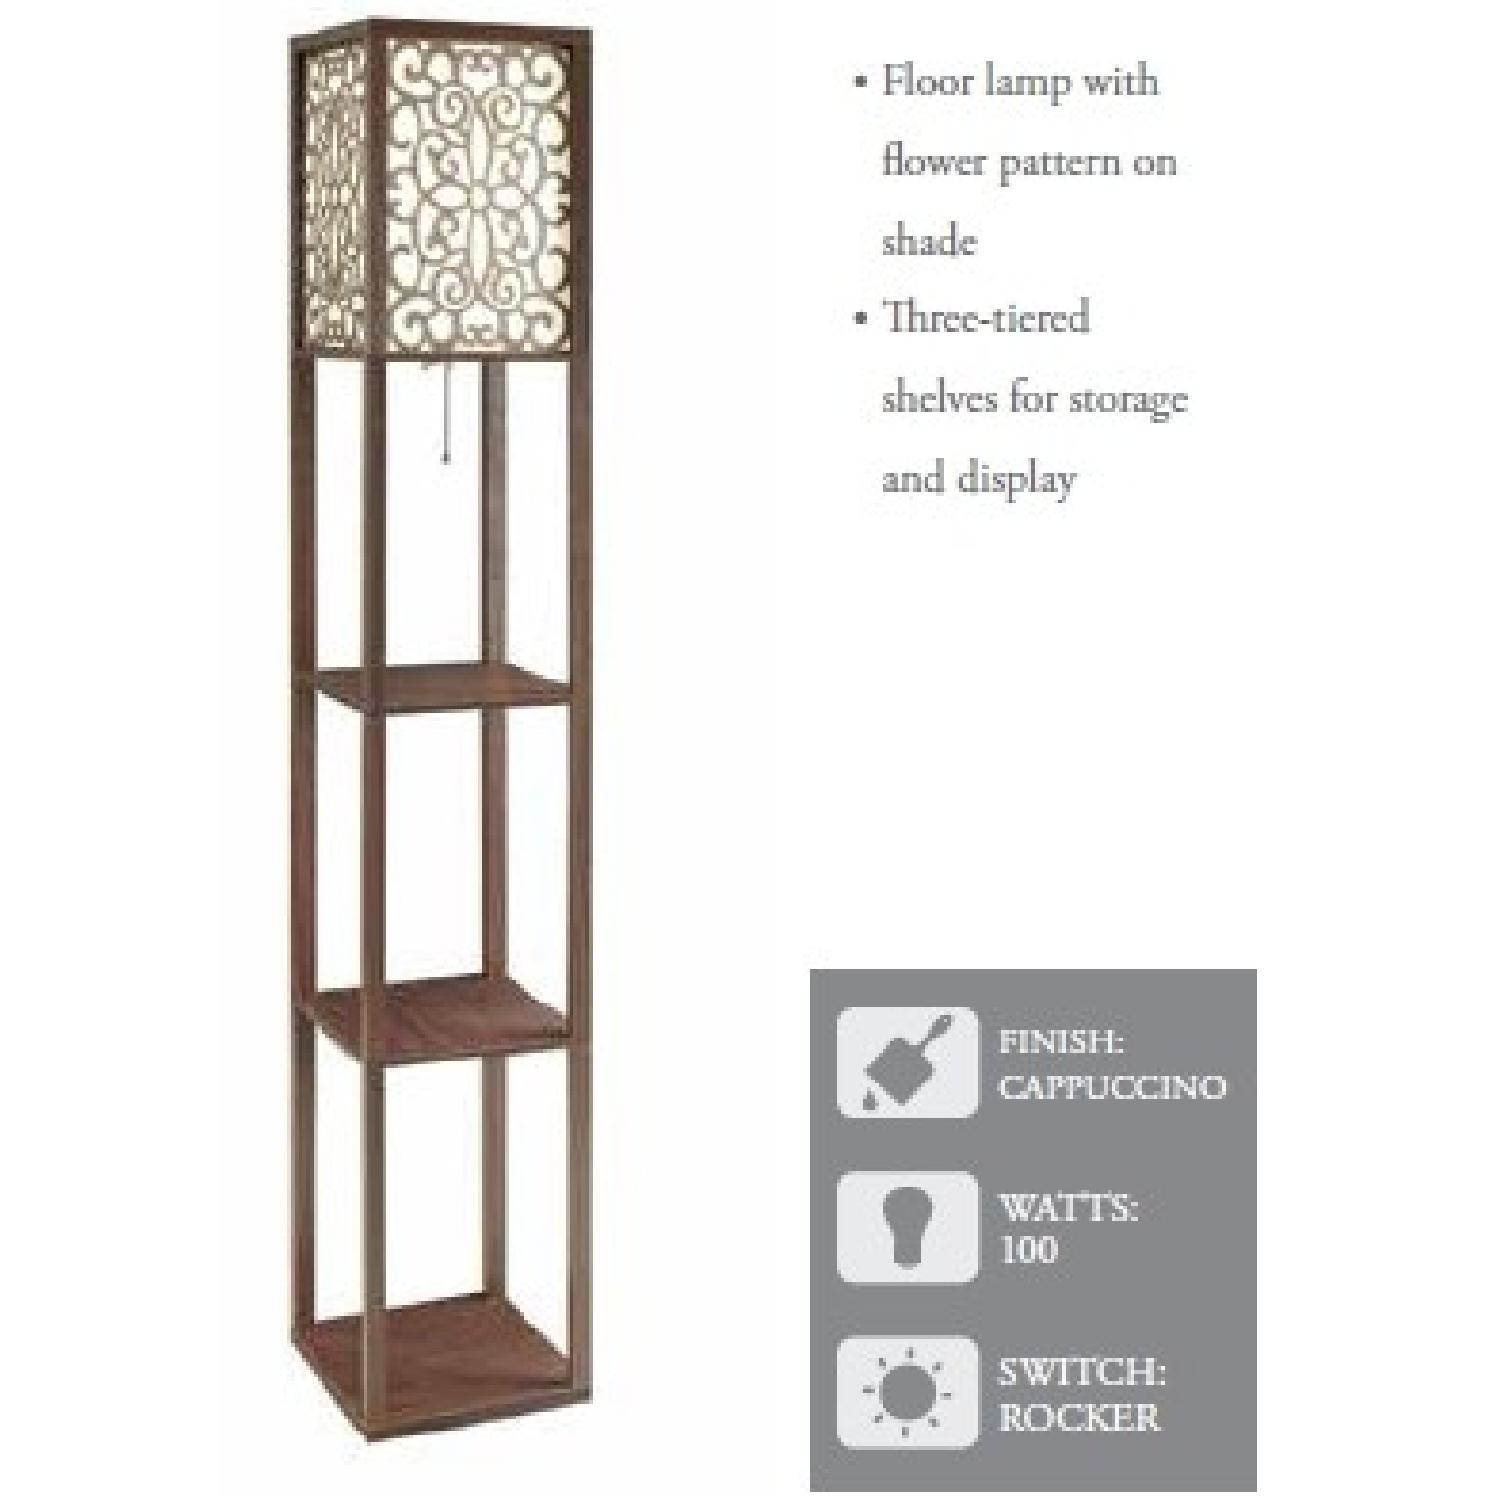 Floor Lamp w/ Flower Pattern On Shade & Three-Tiered Shelves - image-2